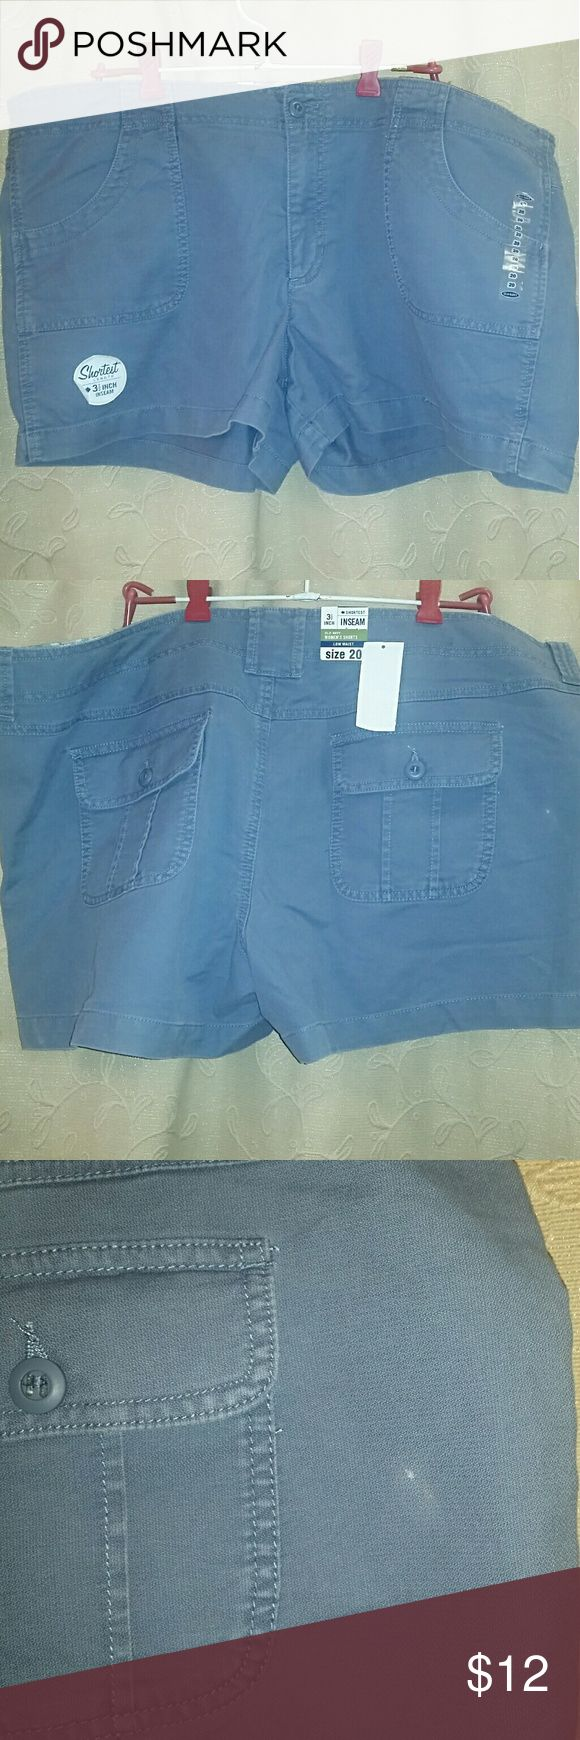 """20 Nwt Plus Old Navy Shorts blue Old Navy blue khaki shorts Size 20 Low waist  3.5"""" inseam New with tags There is a small discoloration on the back of the shorts as shown in the pictures.  ??I will be listing a lost of size 20 clothing over the next week. Im open to offers and do offer a discount on bundles.?? Old Navy Shorts"""